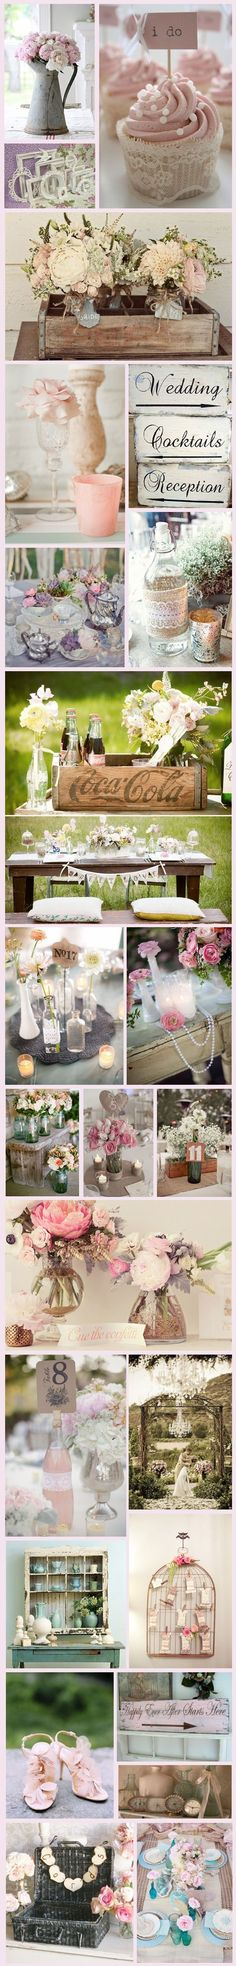 {Wedding Wednesday} Vintage Theme Ideas for Plus Size Brides | The Pretty Pear Bride